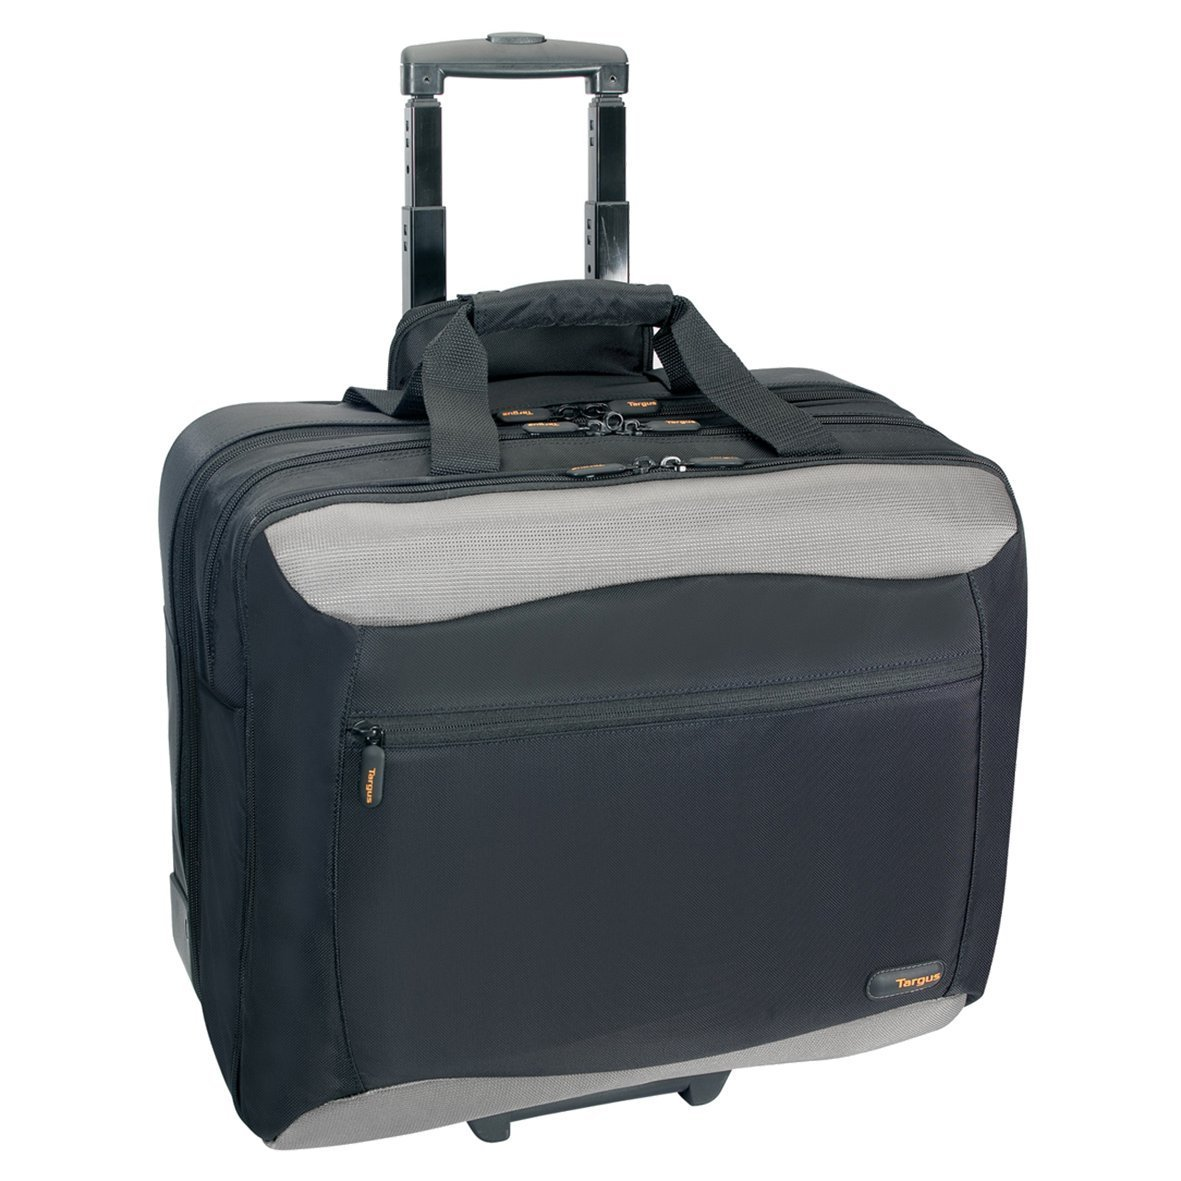 Targus TCG717 City Gear Roller Case - Black